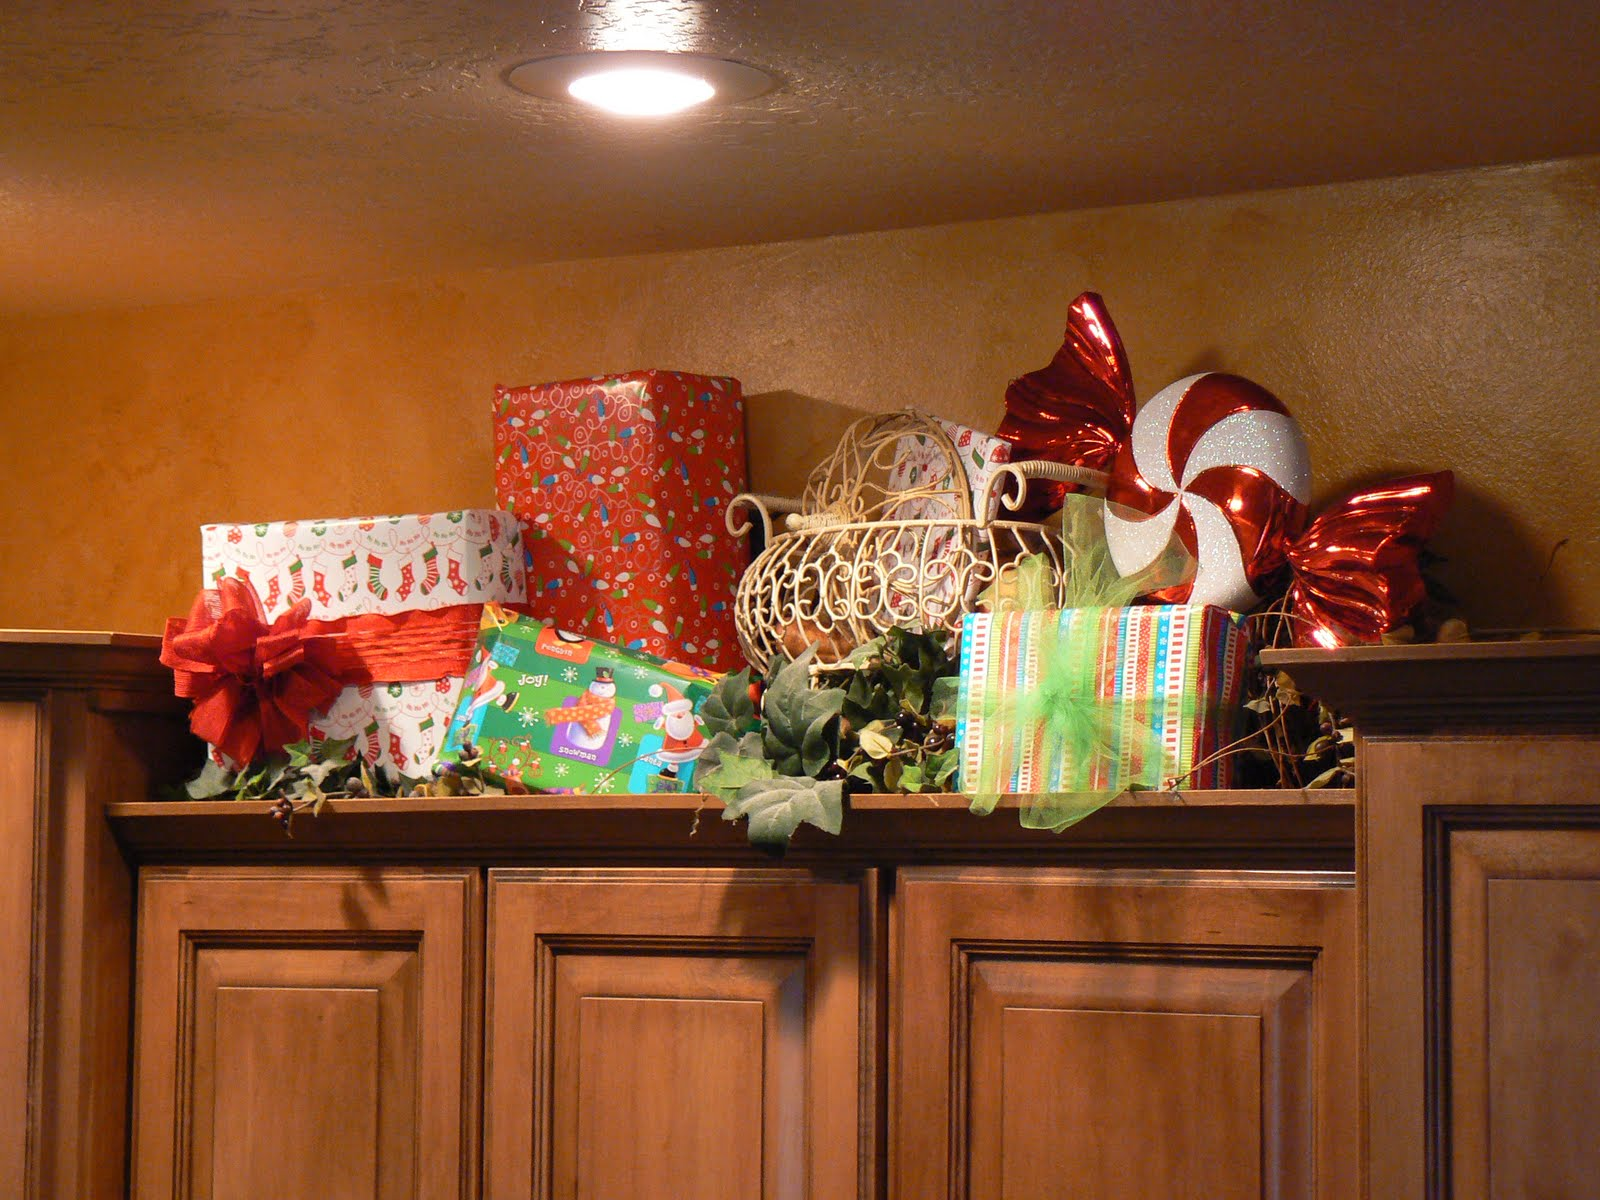 Decorations Above Kitchen Cabinets - Best Home Decoration ...